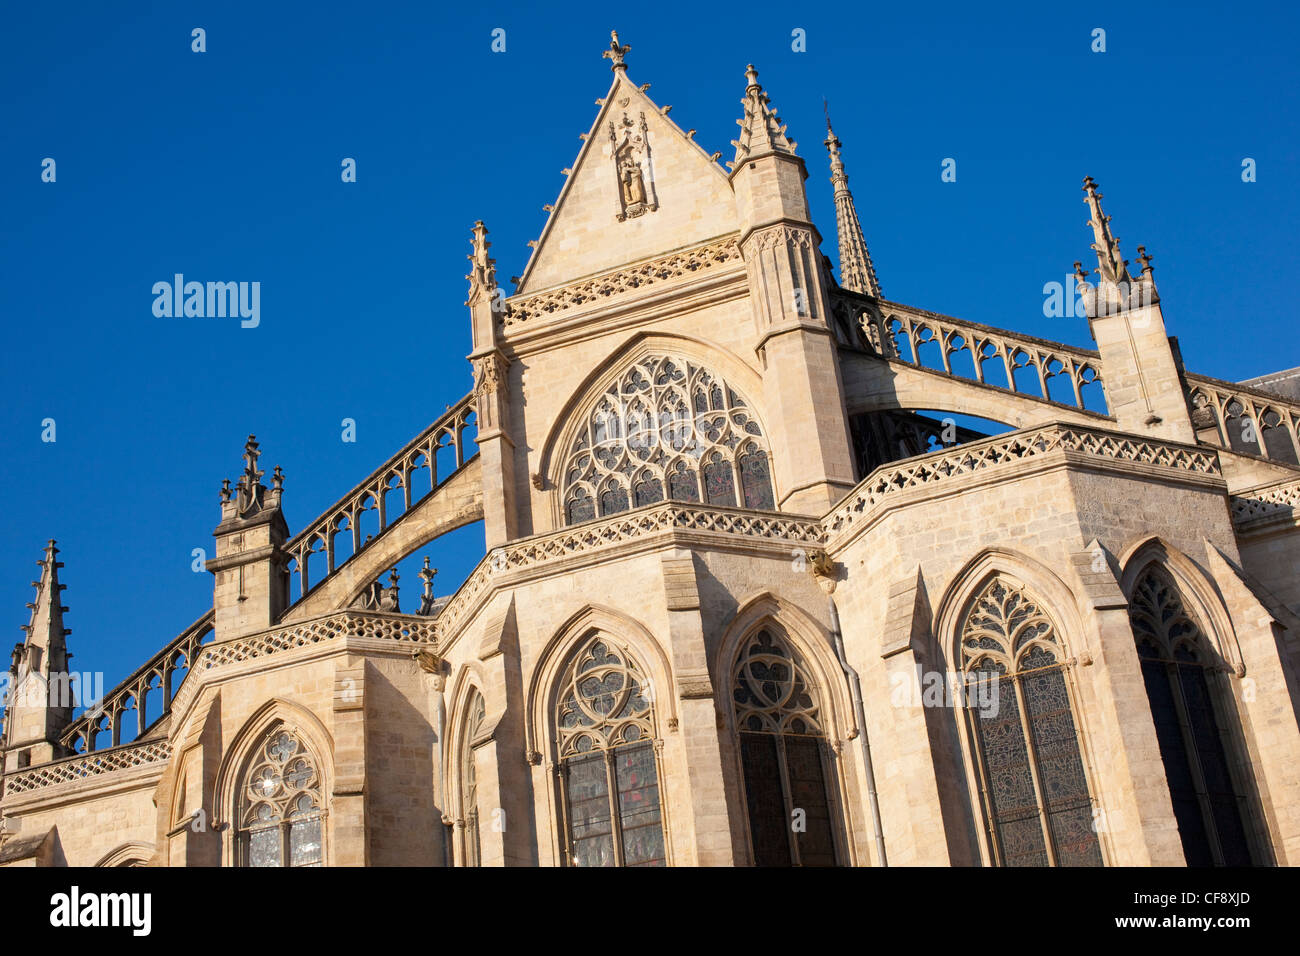 The Basilica of St. Michael, Bordeaux, Gothic church in Bordeaux, France. - Stock Image